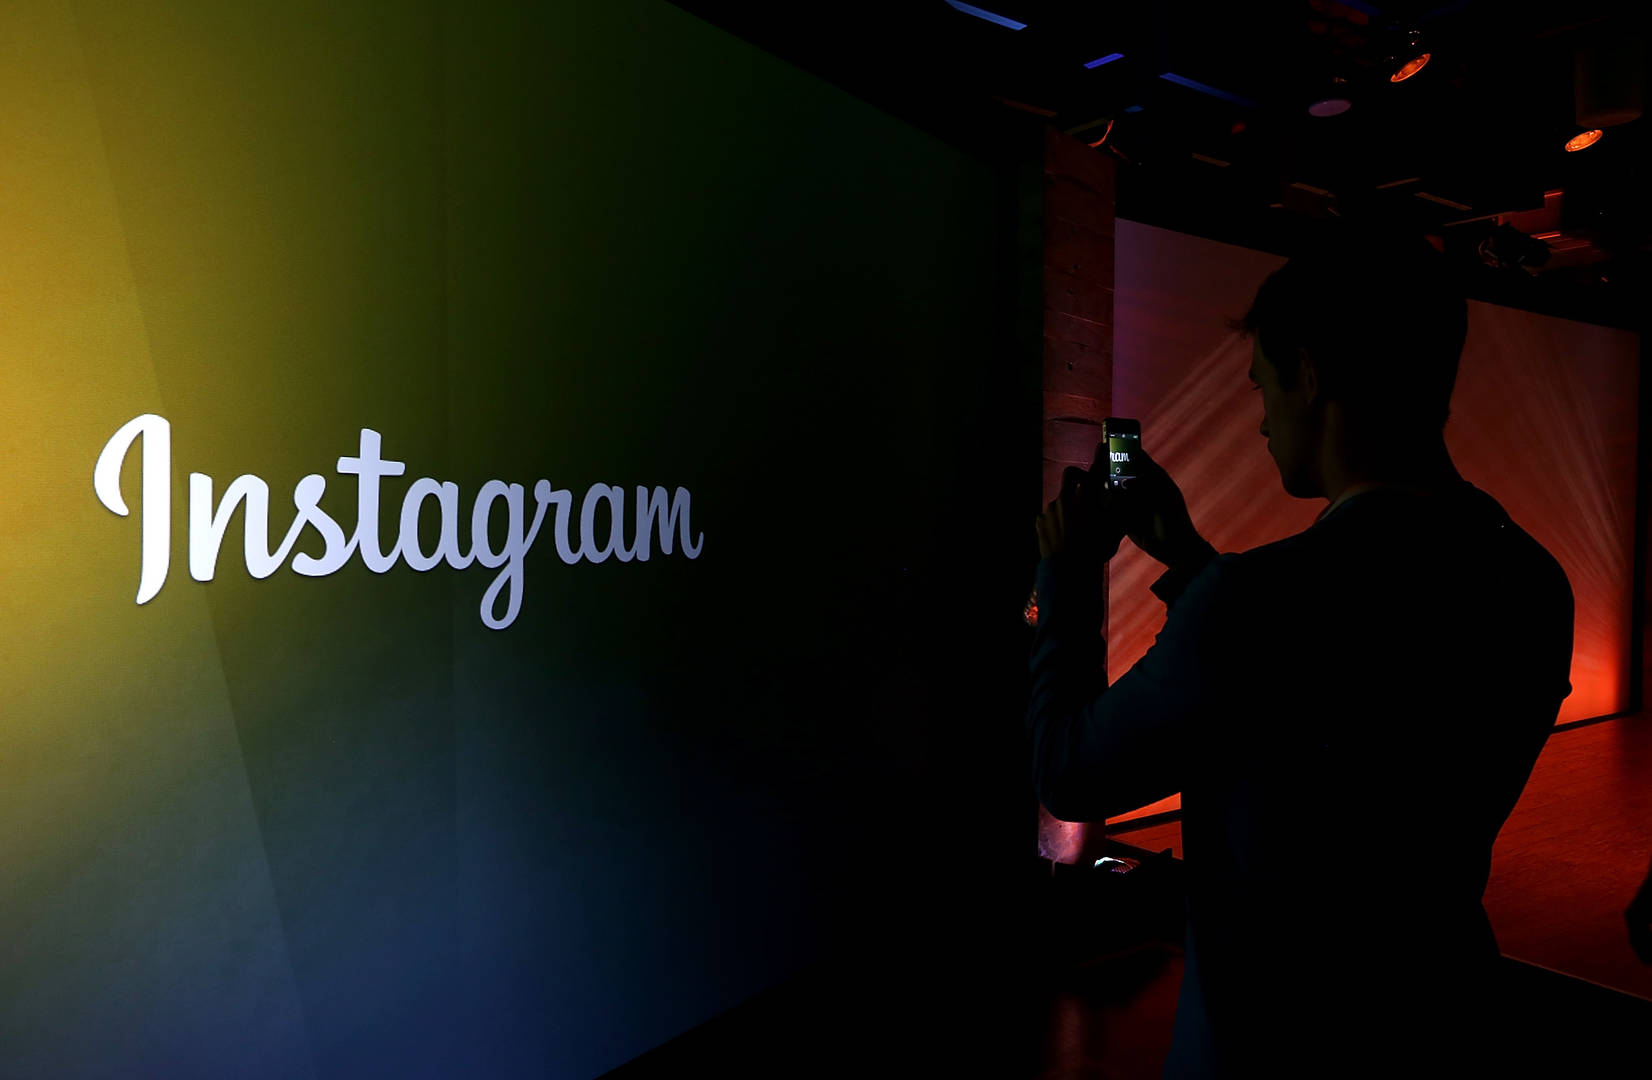 Hacking A Private Instagram Account Is Way Easier Than You Think